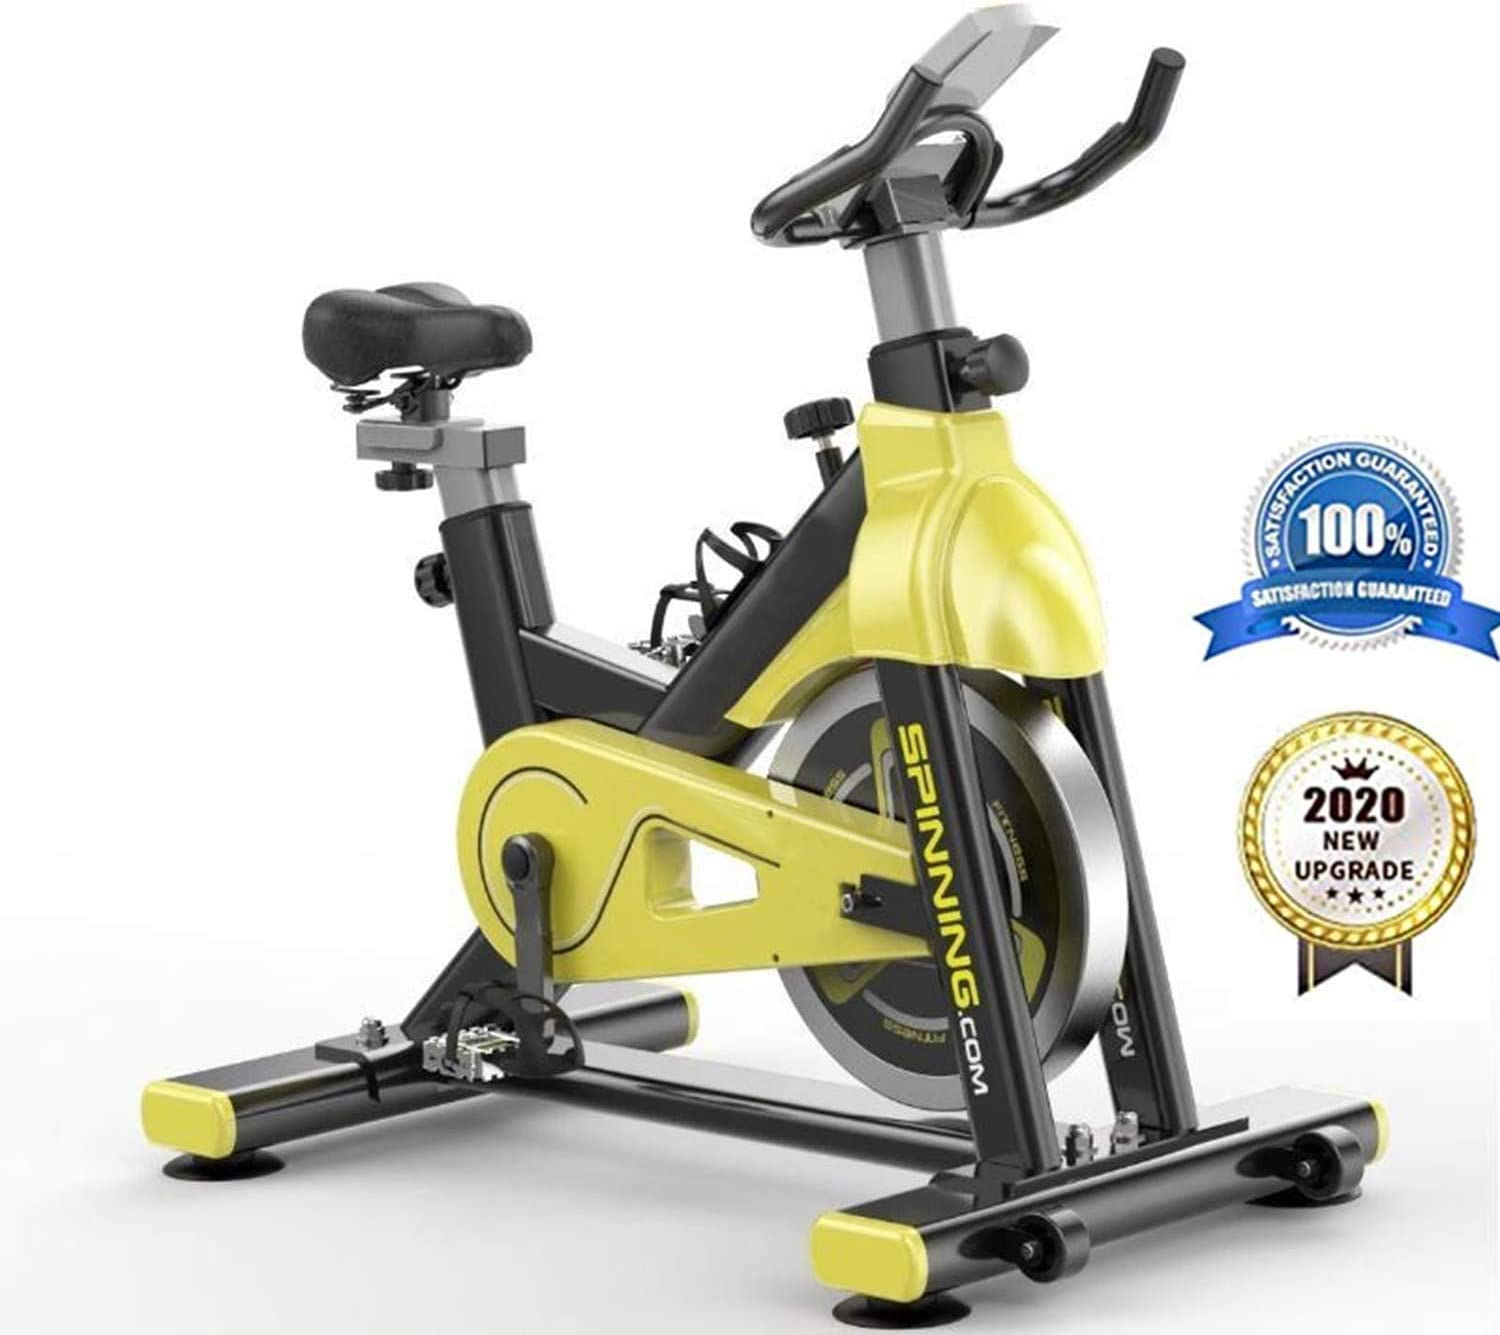 Amazon Co Jp Home Indoor Exercise Bike Stationery Cycling Bike Super Quiet Indoor Bicycle Home Exercise Spinning Bike Multifunctional Display Fitness Equipment For Men And Women Home Kitchen Subscribe to our newsletter for exclusive content, deals & events. www amazon co jp